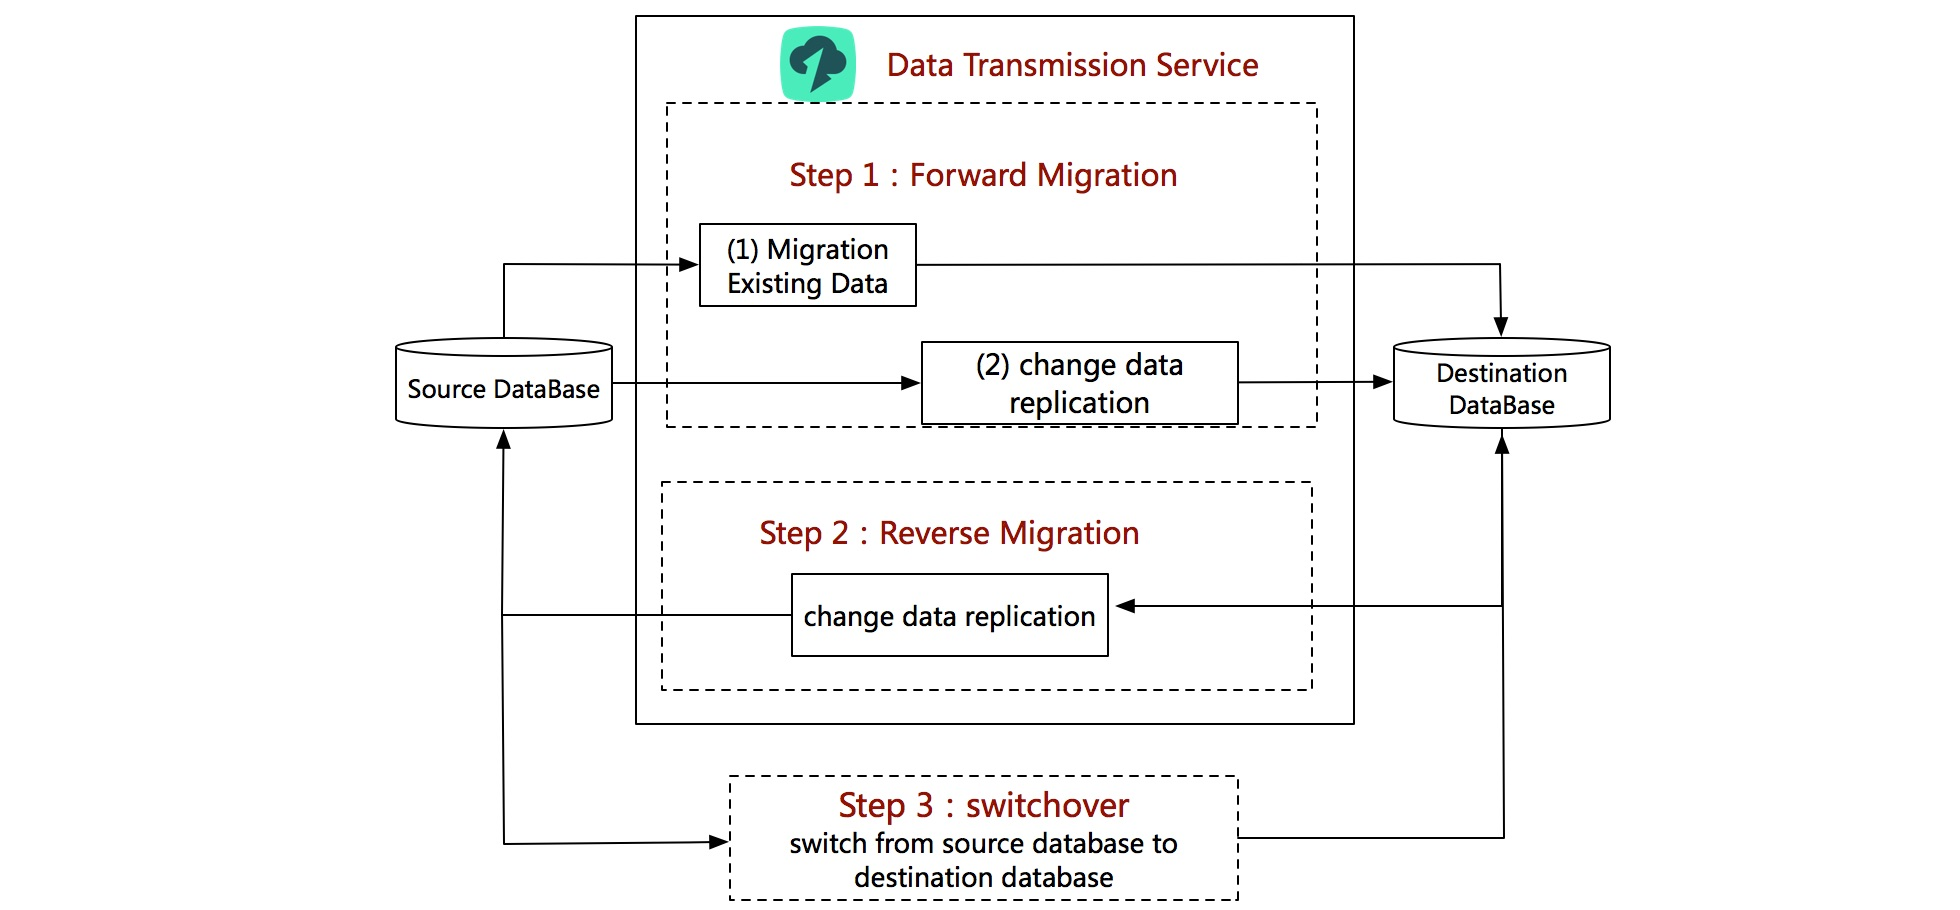 Data Transmission Service: Data Migration and